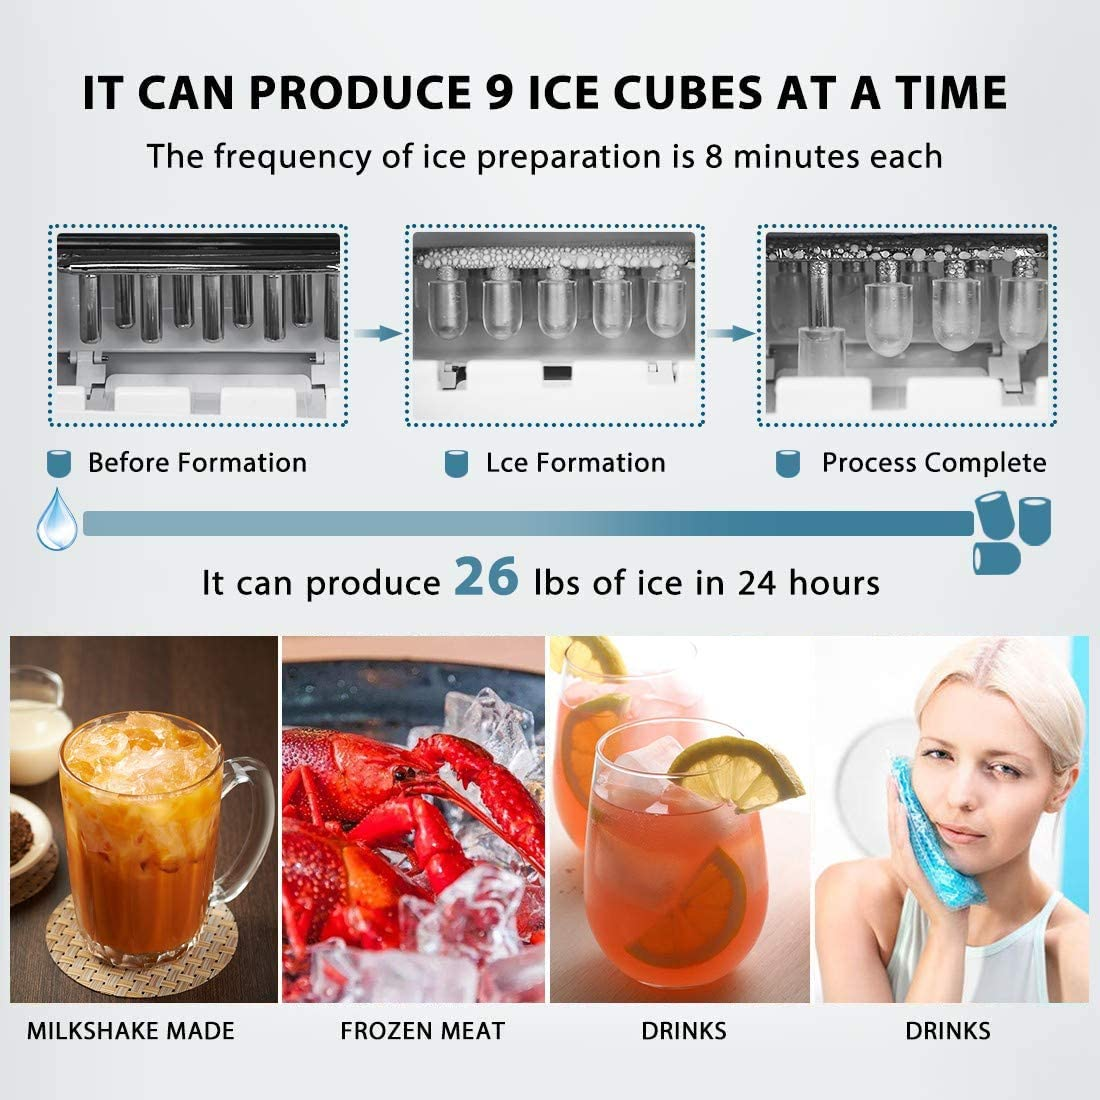 Countertop Automatic Ice Cube Maker Machine Ice Scoop and Basket for Home Office Bar Party, Ready in 8mins Bratsk Ice Maker Portable 26lbs 24Hrs